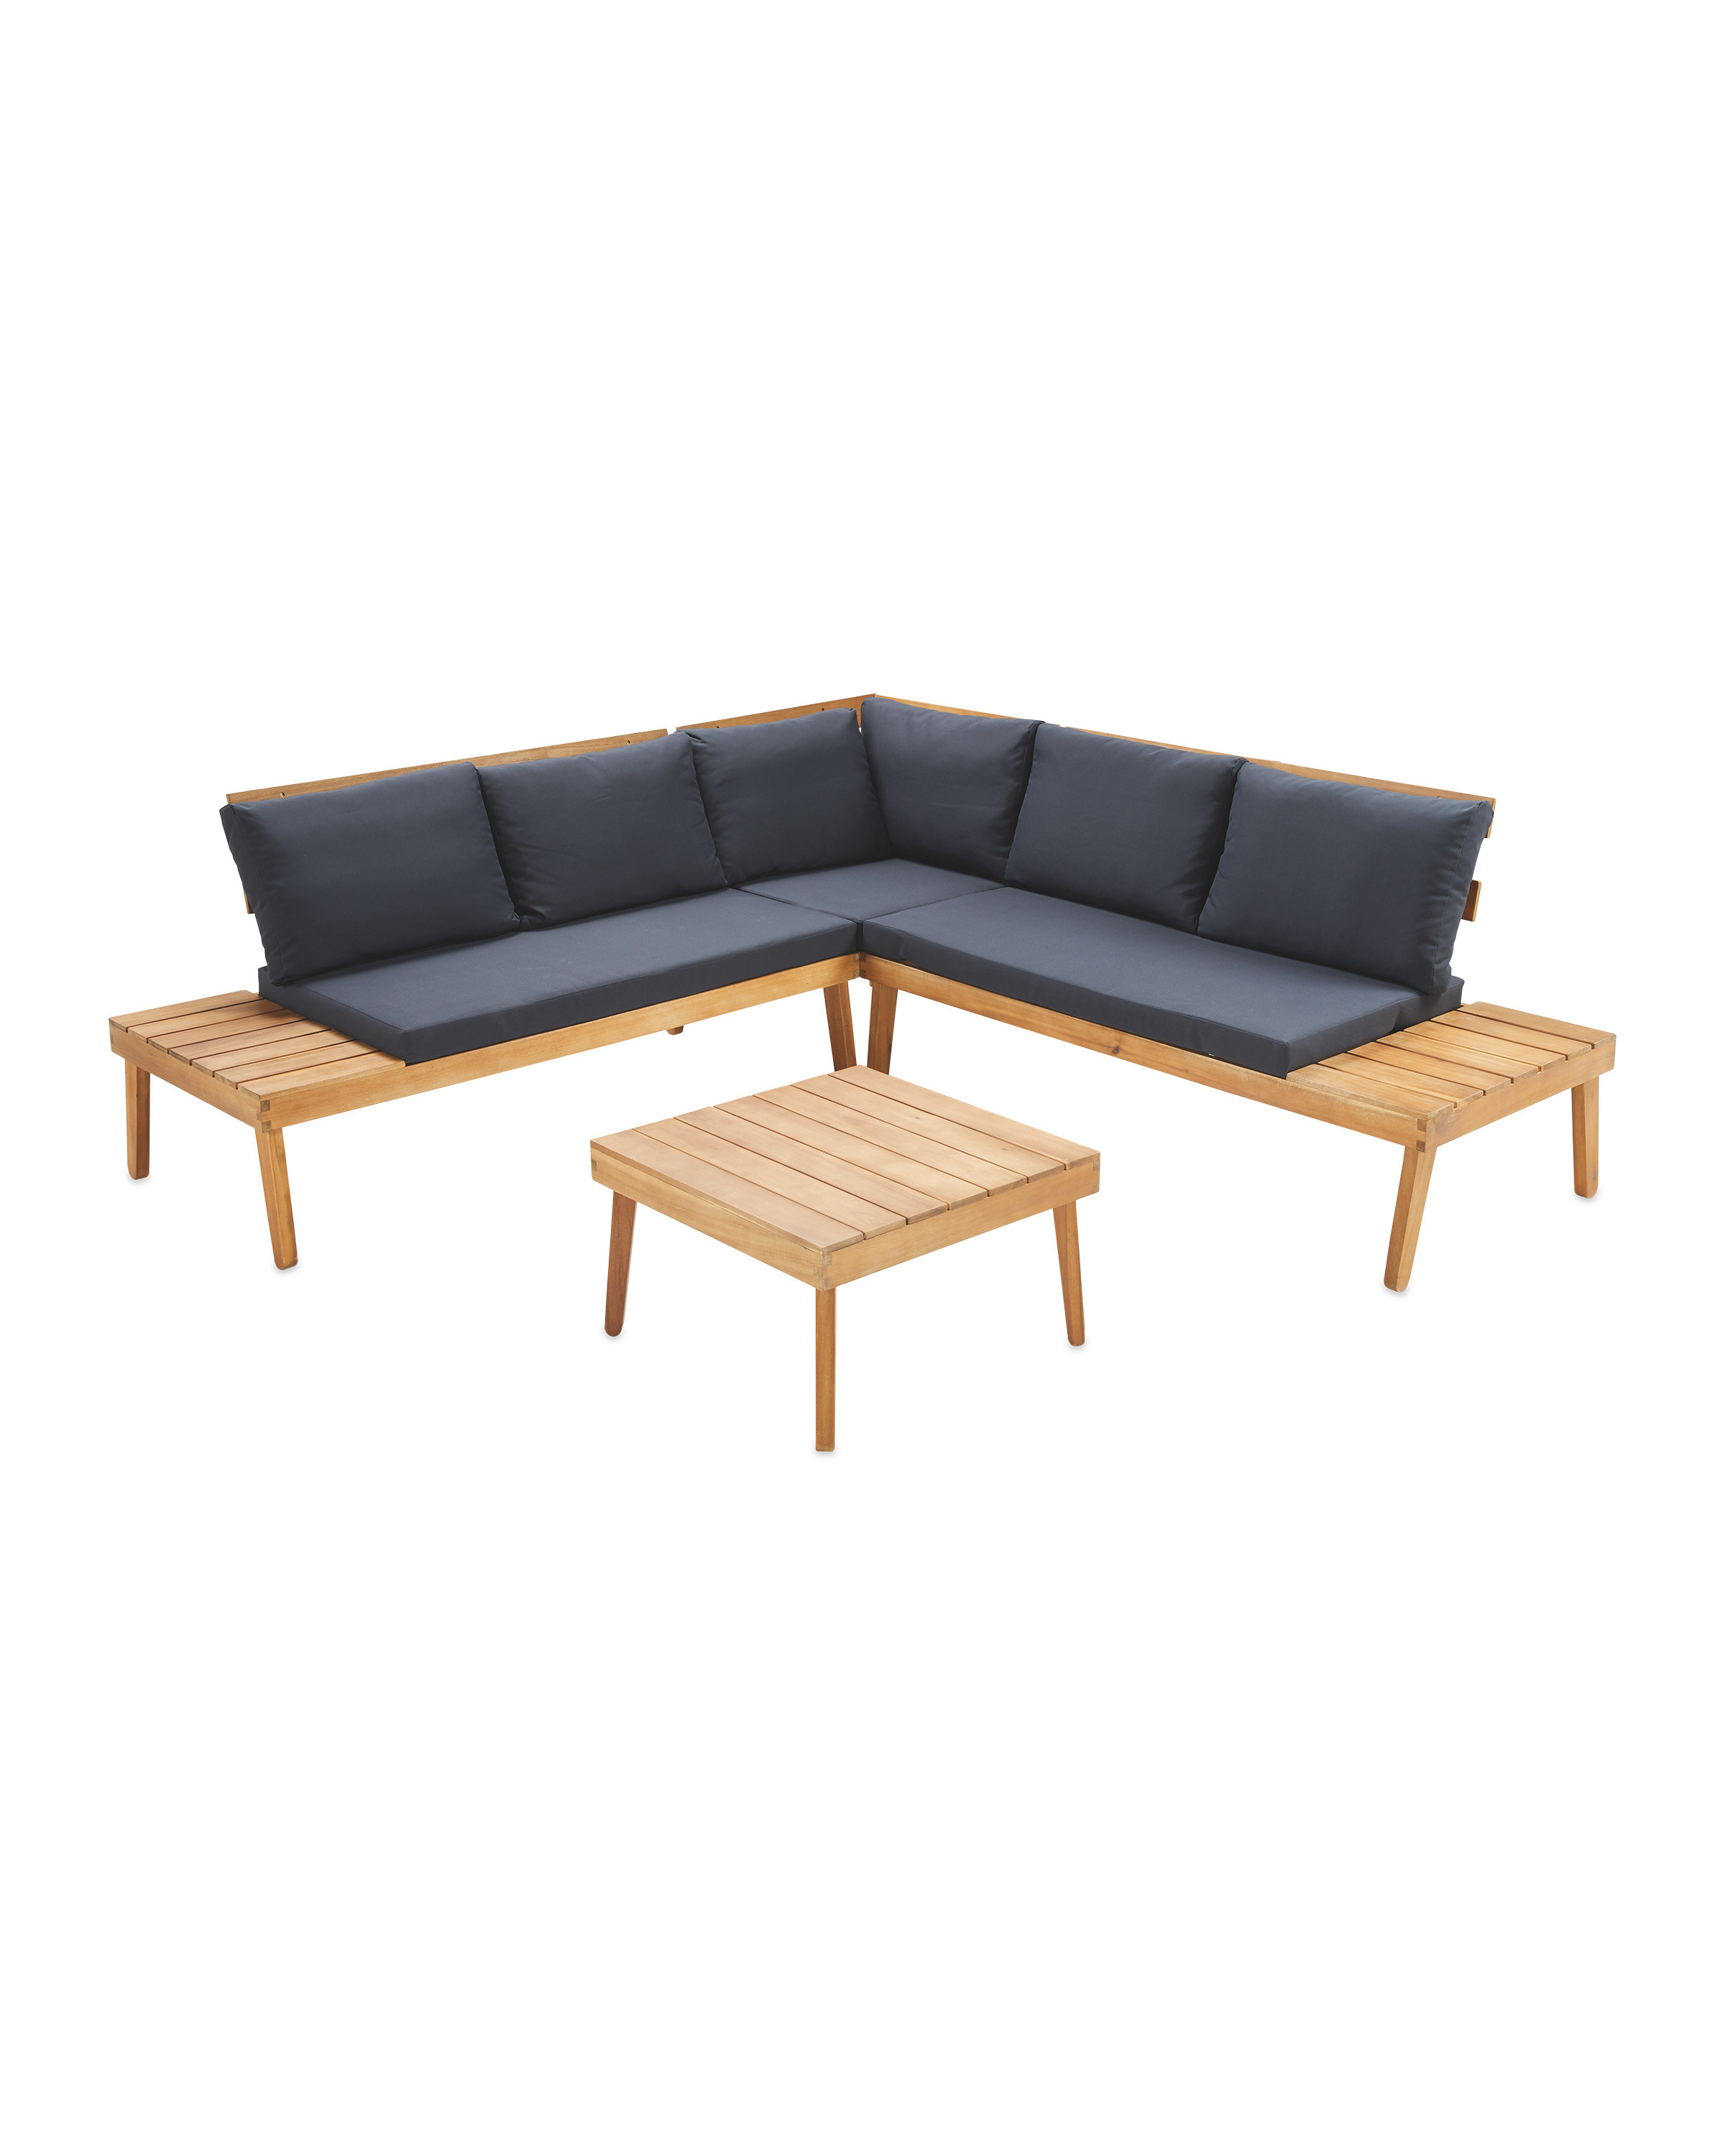 Outstanding Large Wooden Sofa Table Set Download Free Architecture Designs Embacsunscenecom